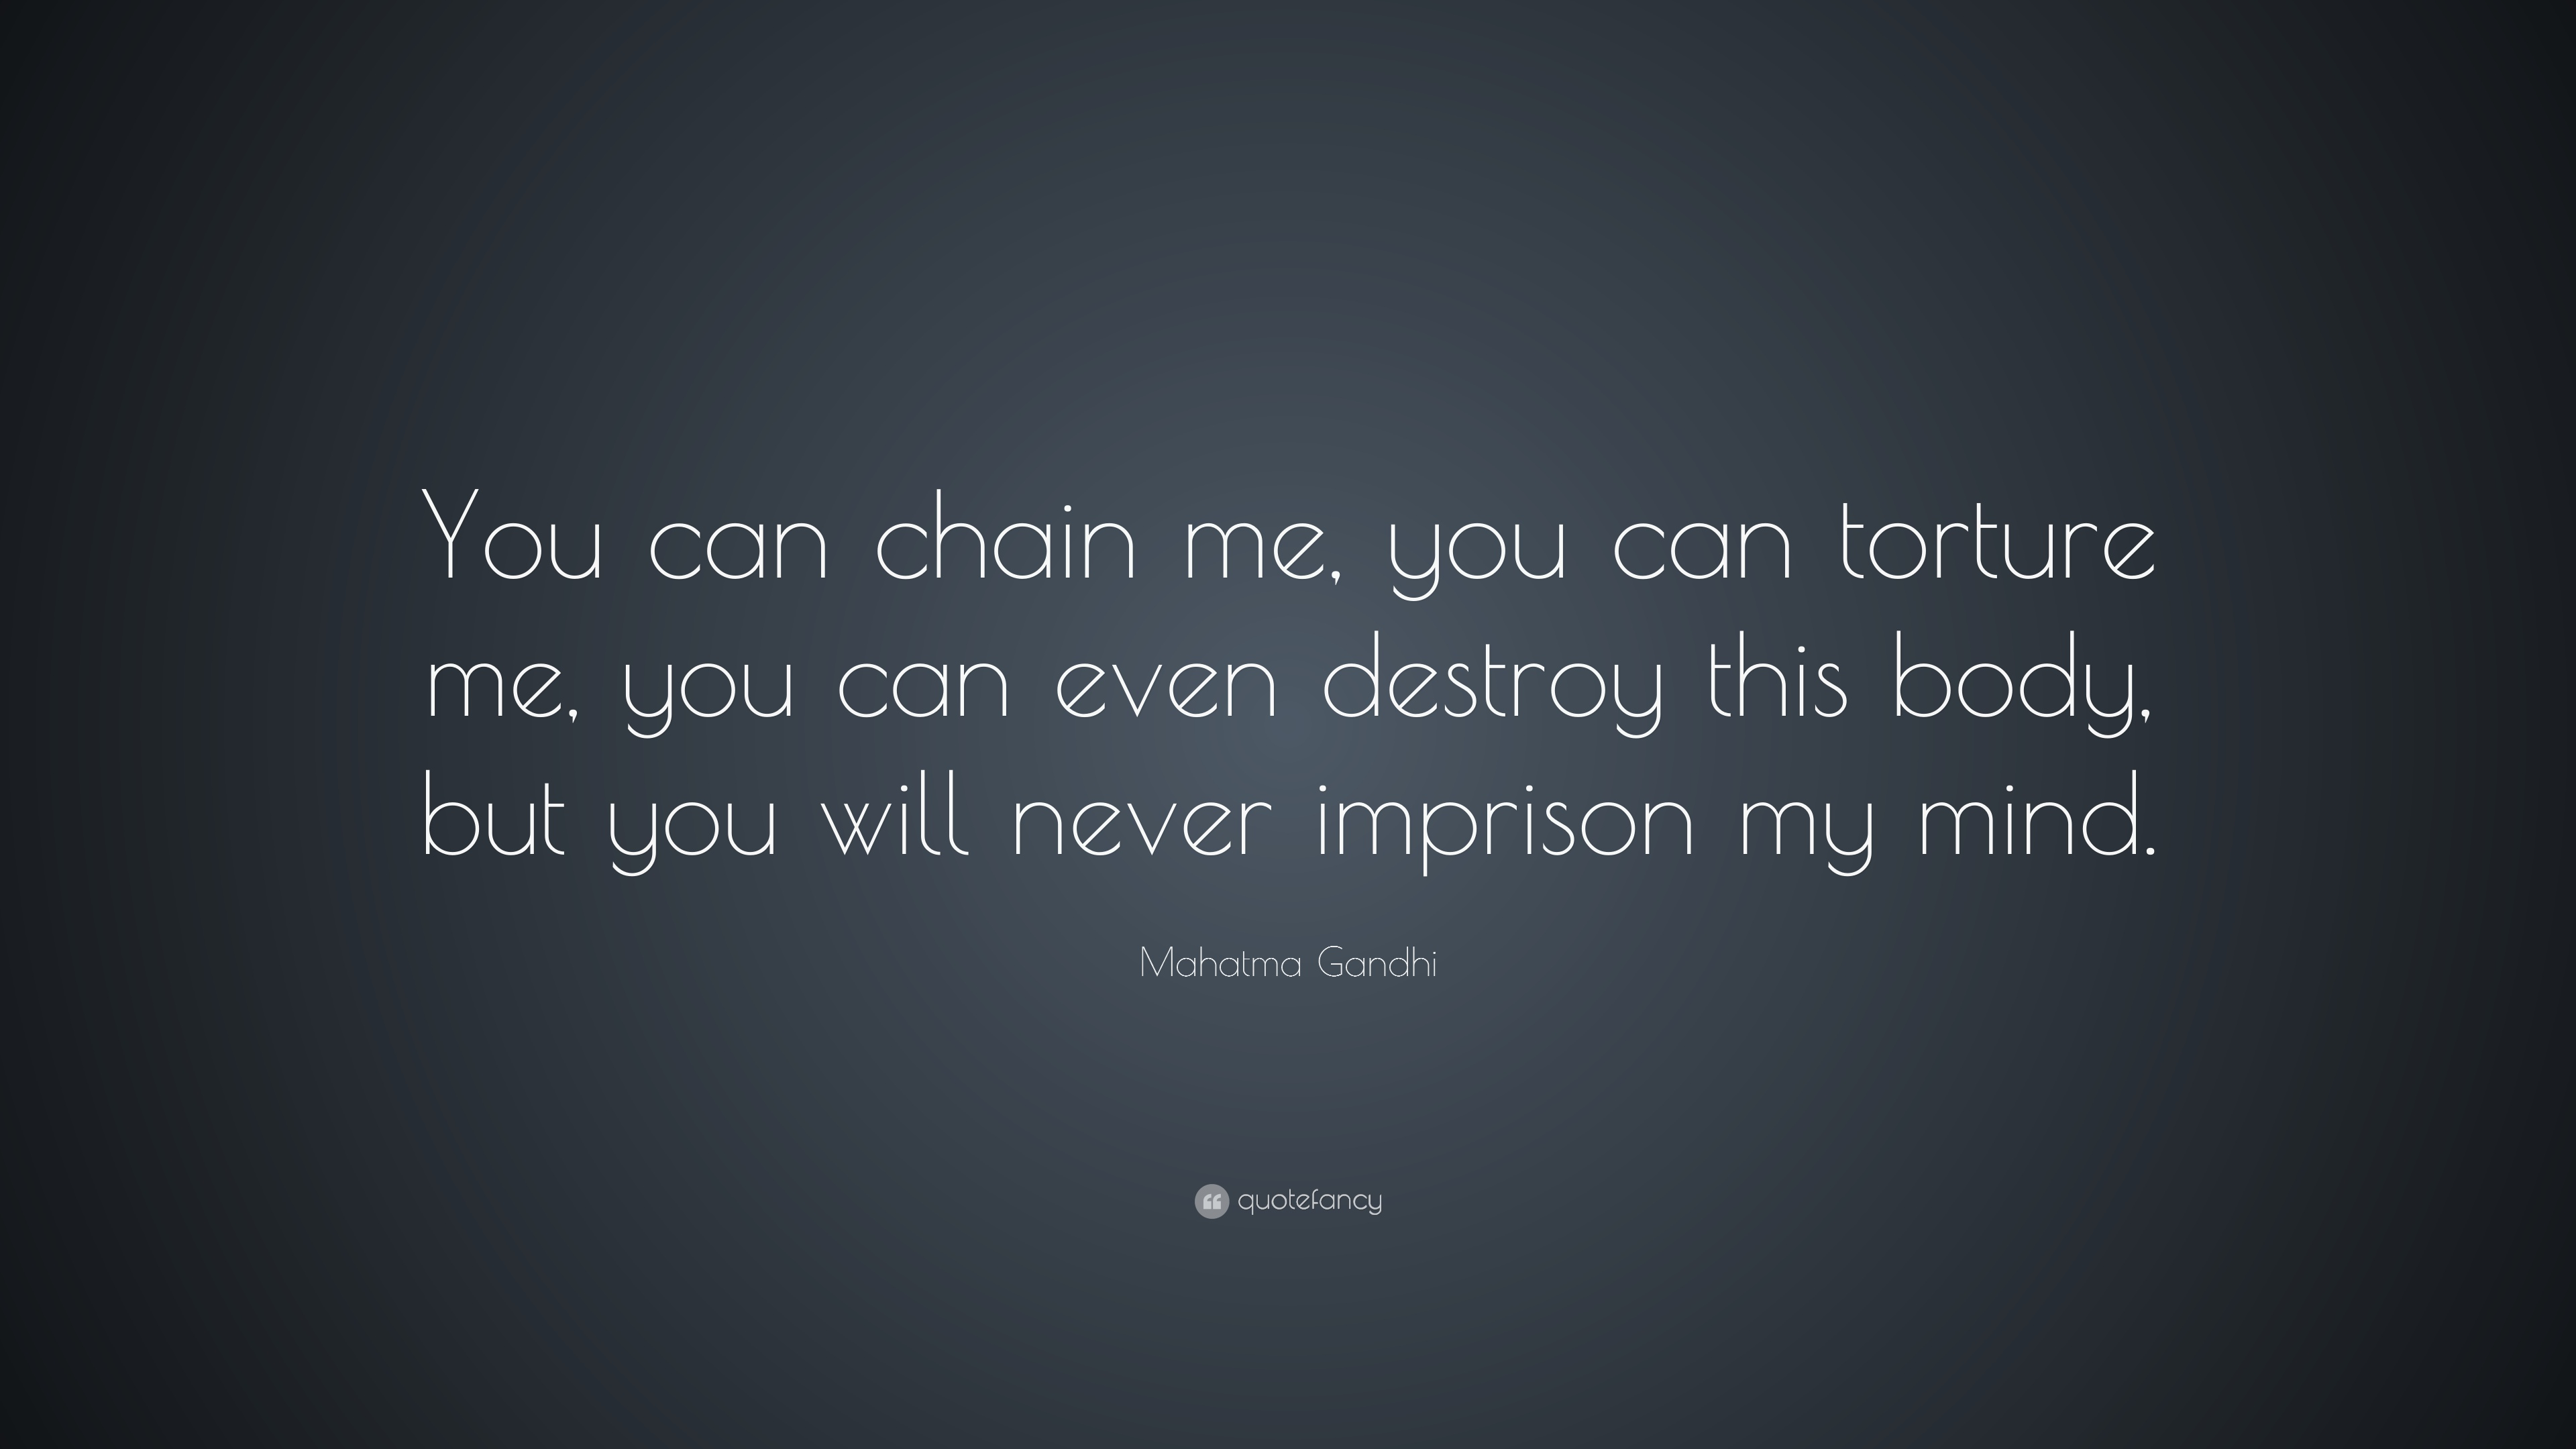 Mahatma Gandhi Quote You Can Chain Me You Can Torture Me You Can